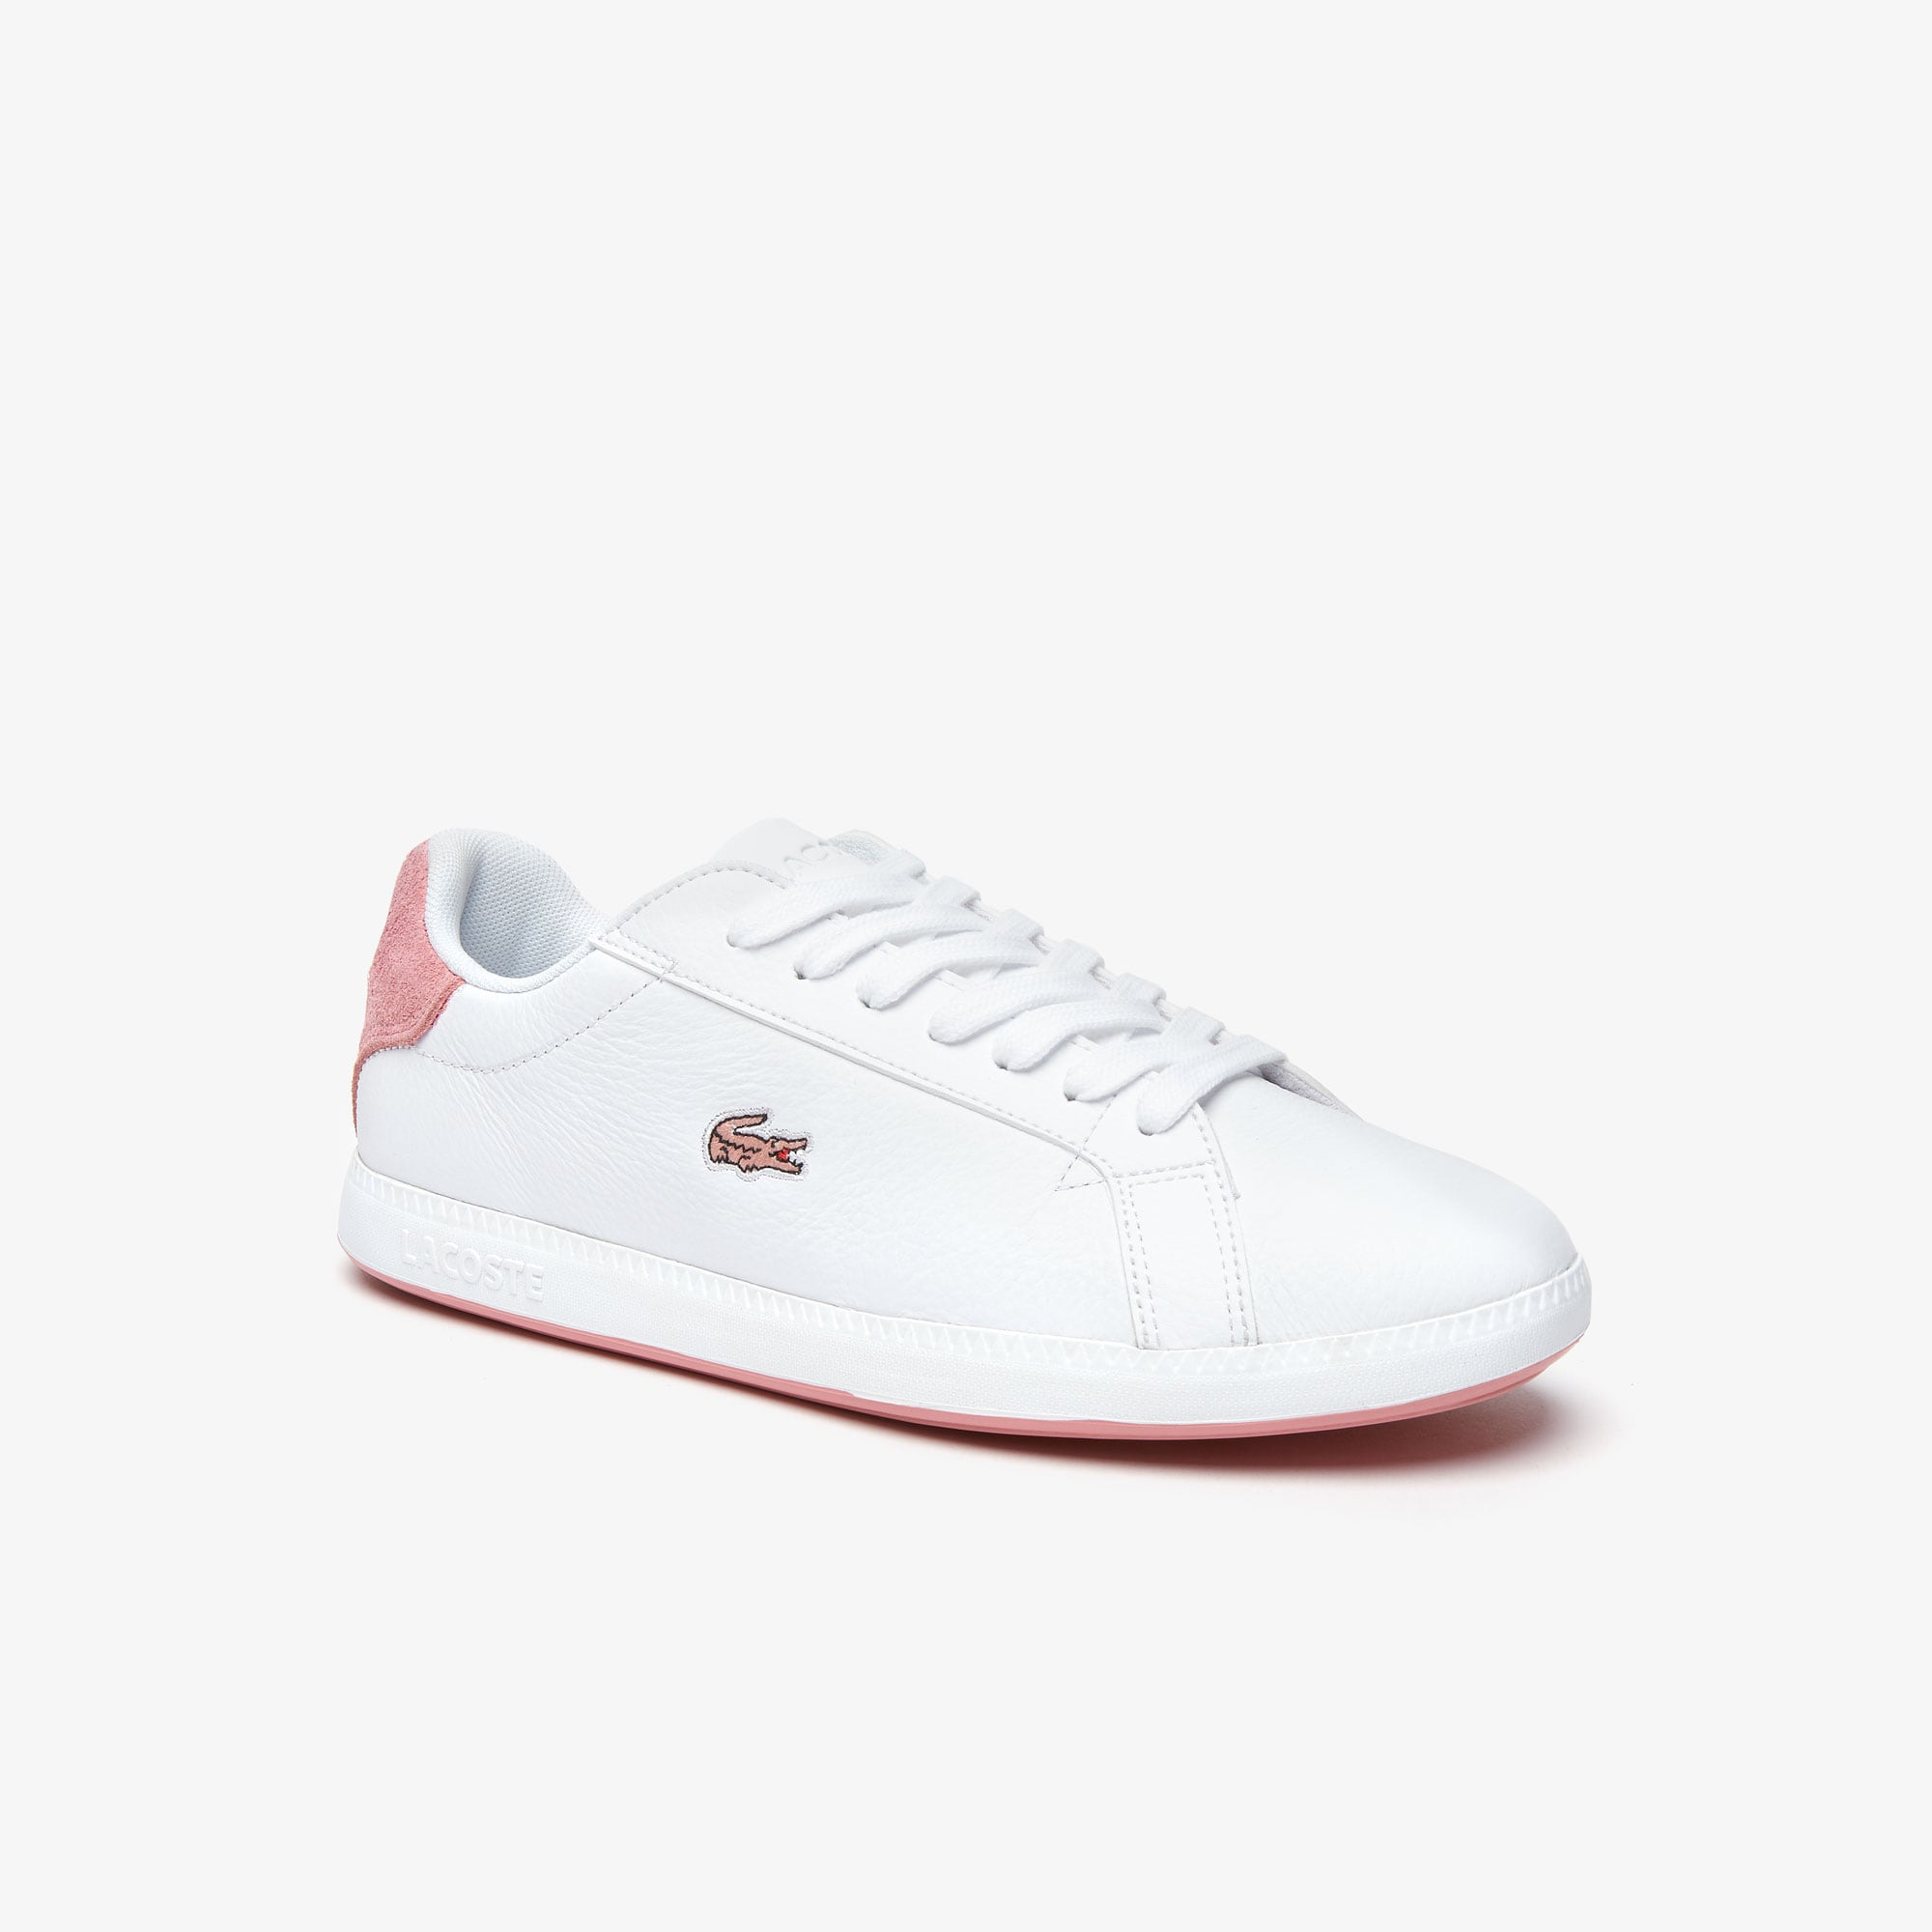 a24082fad6ab Chaussures femme | Collection Femme | LACOSTE